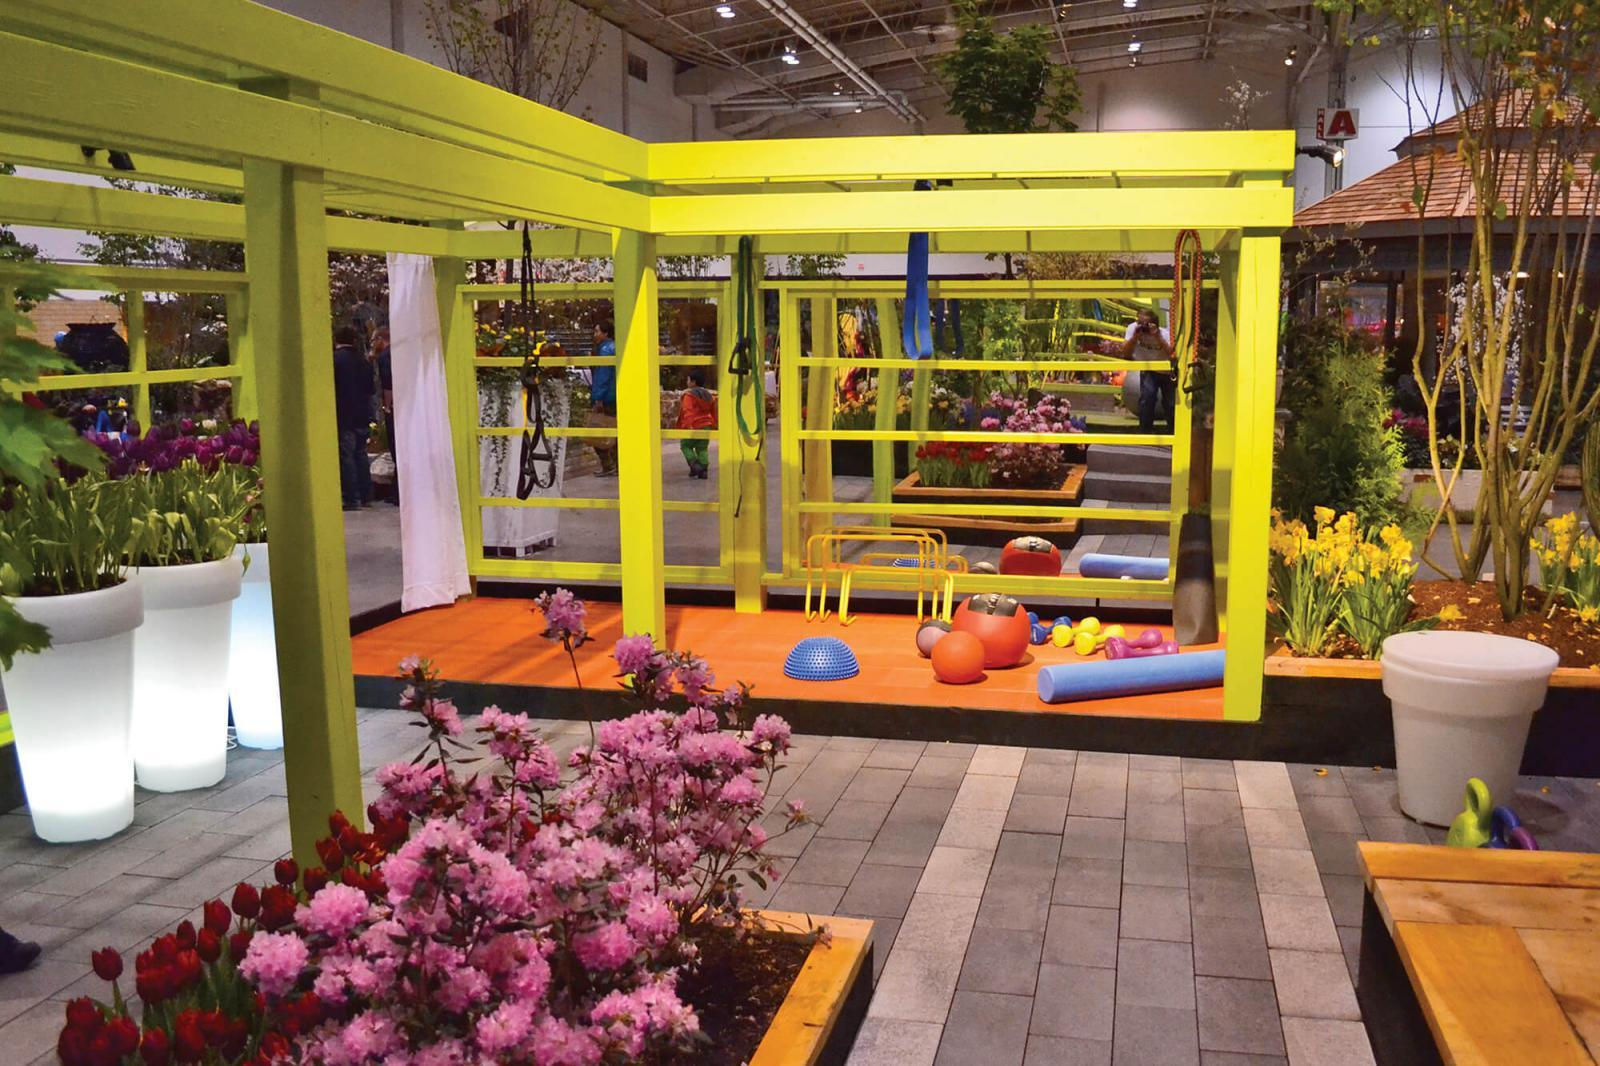 While it is ideal to have a property with various levels and open spaces, an Otium Exercise Garden can fit in any small urban environment. This is Shawn Gallaugher's garden at Canada Blooms in 2012.